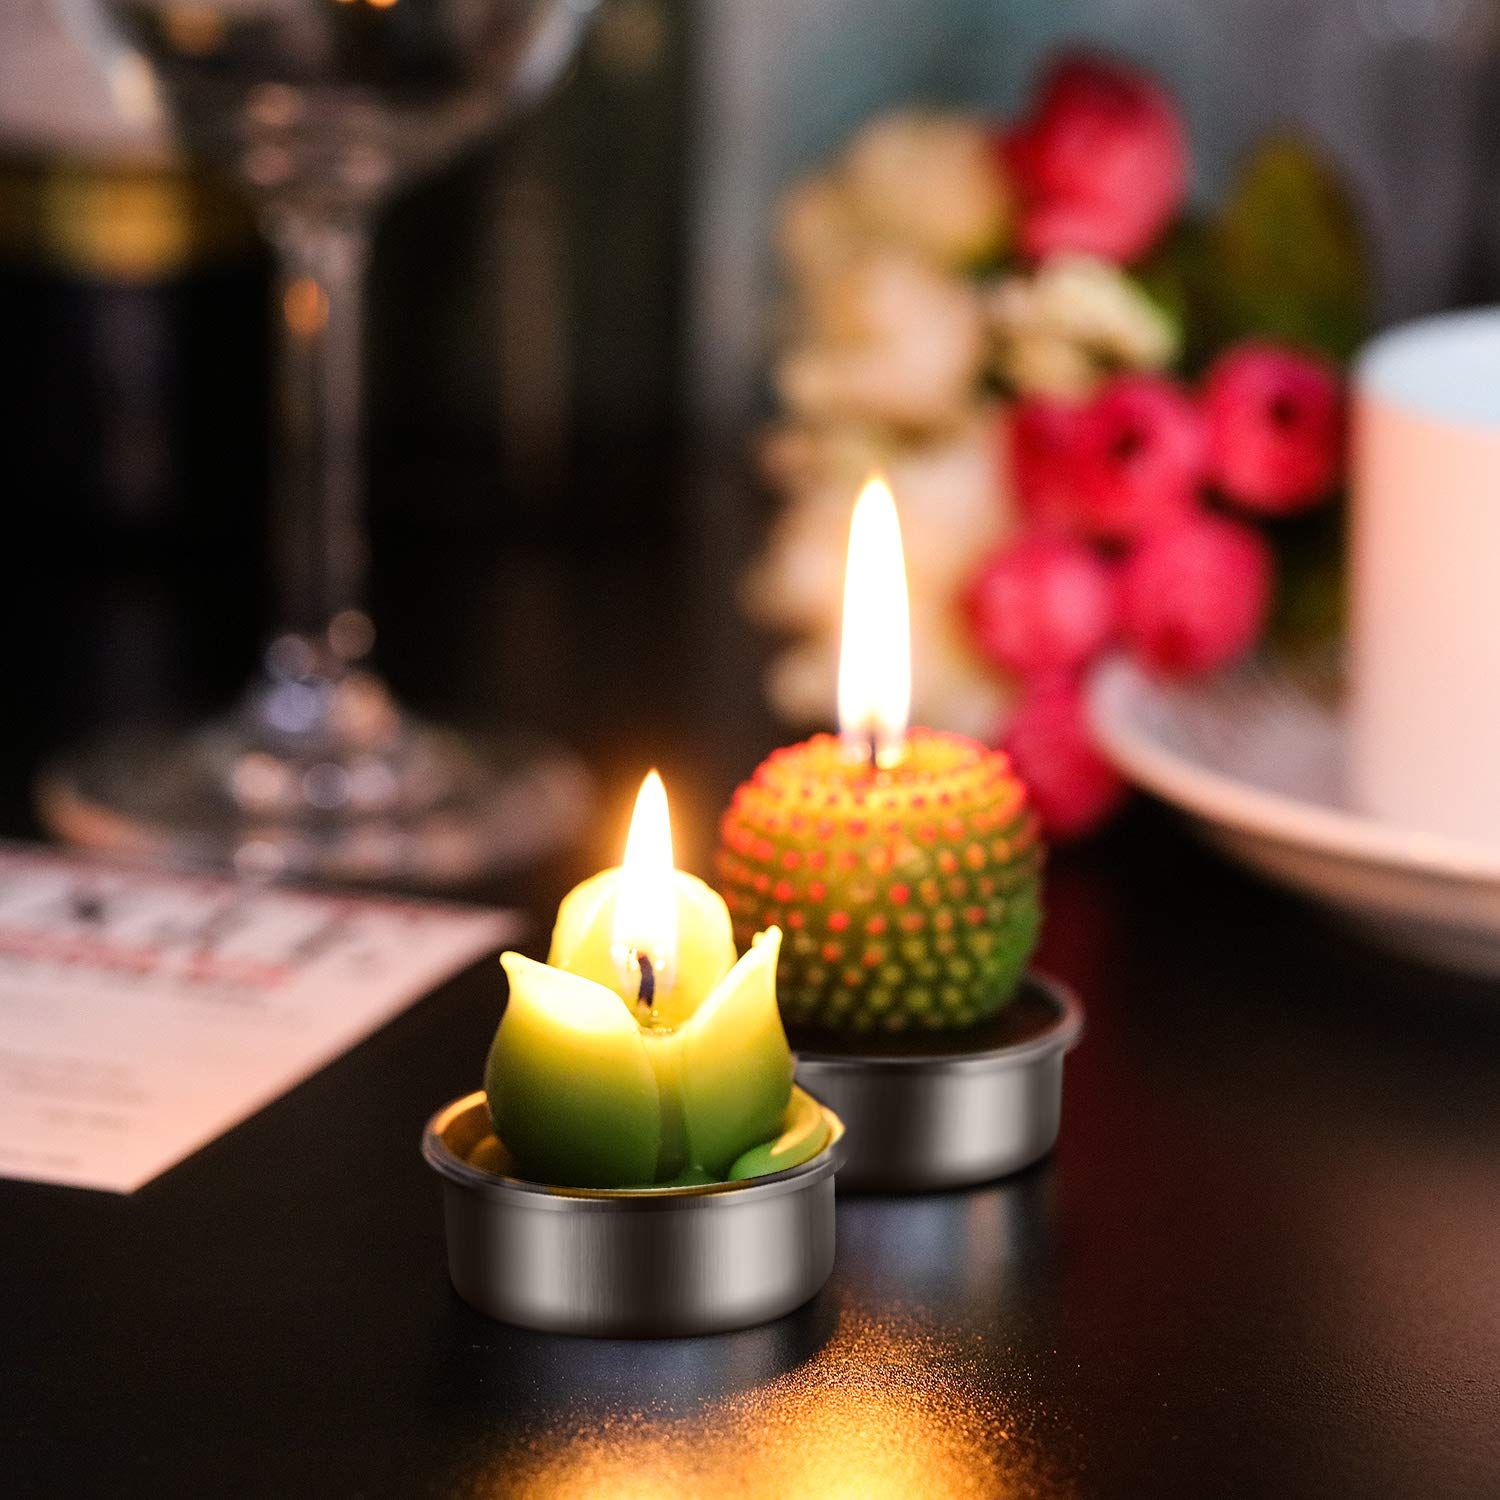 Tatuo 12 Pieces Cactus Candles Succulent Cactus Rose Tealight Handmade Candles for Teatime Spa Home Party Wedding Decoration Gifts by Tatuo (Image #6)